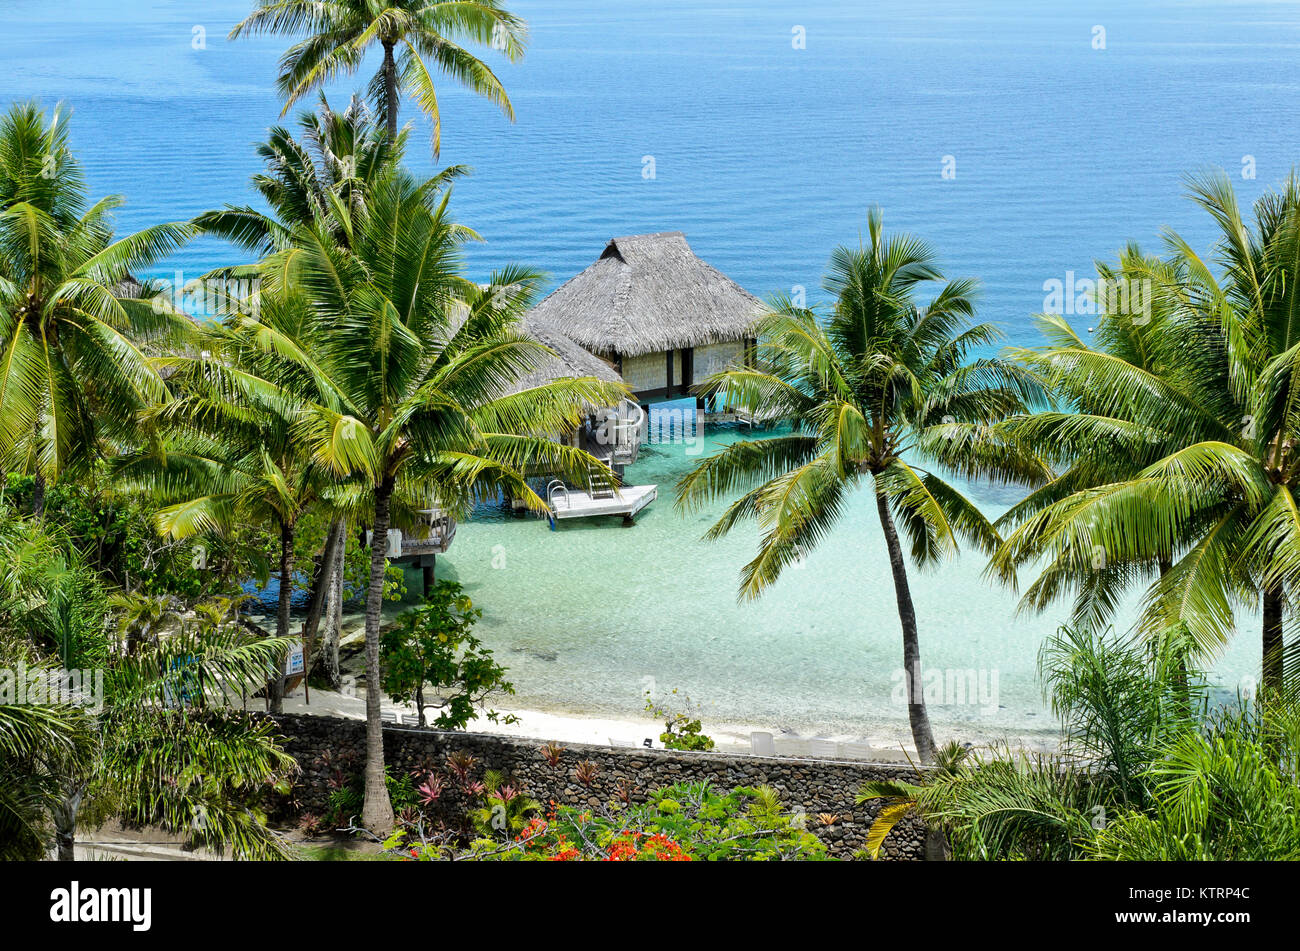 Bora Bora, French Polynesia - Stock Image